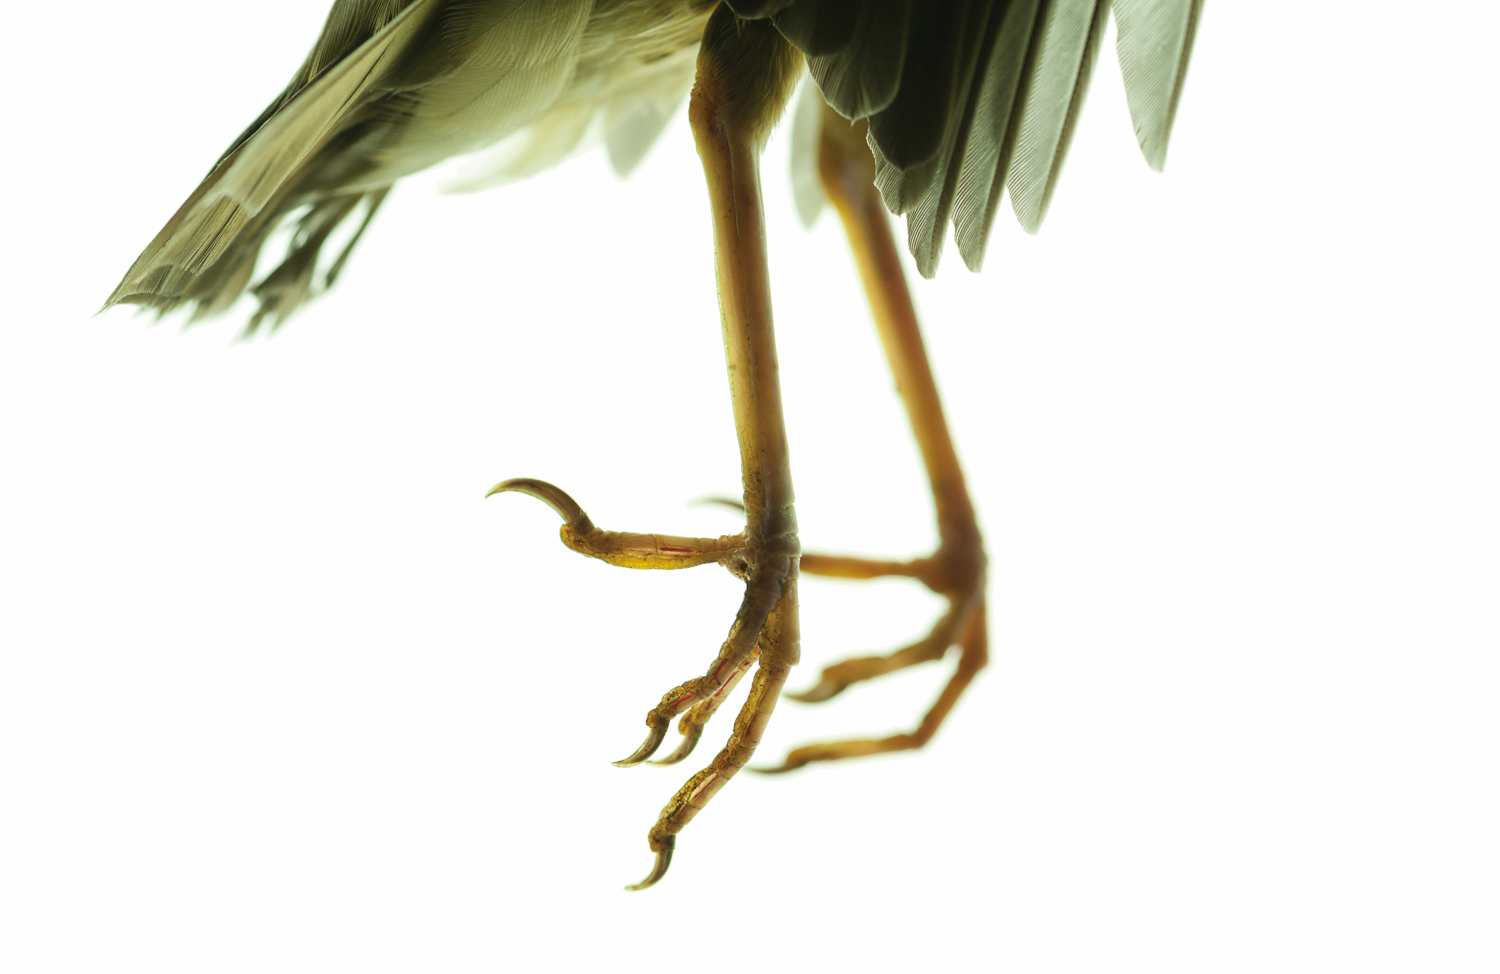 Photograph of a song thrush's feet on a white background